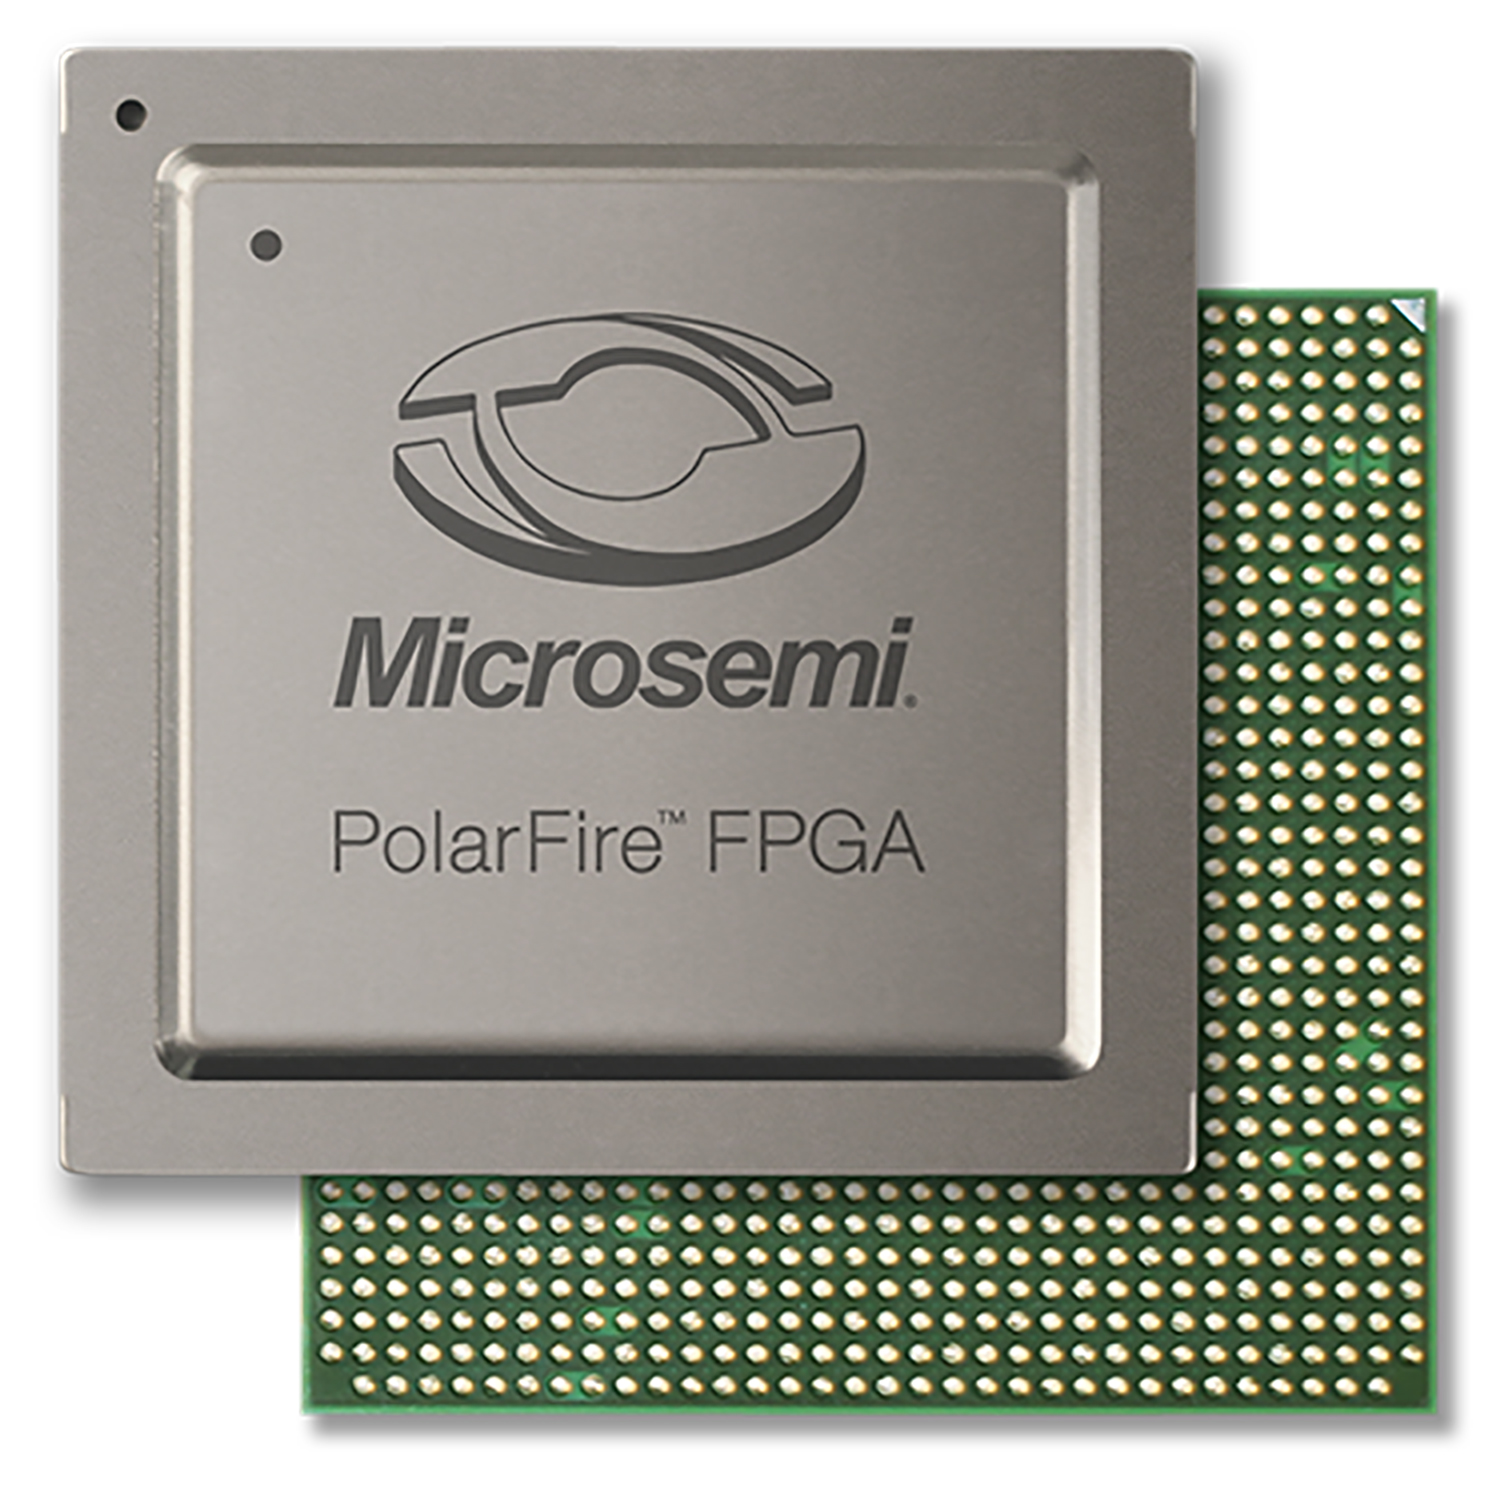 Industry's lowest power, encryption hardened FPGA provides an integrated and secure environment for connected machines